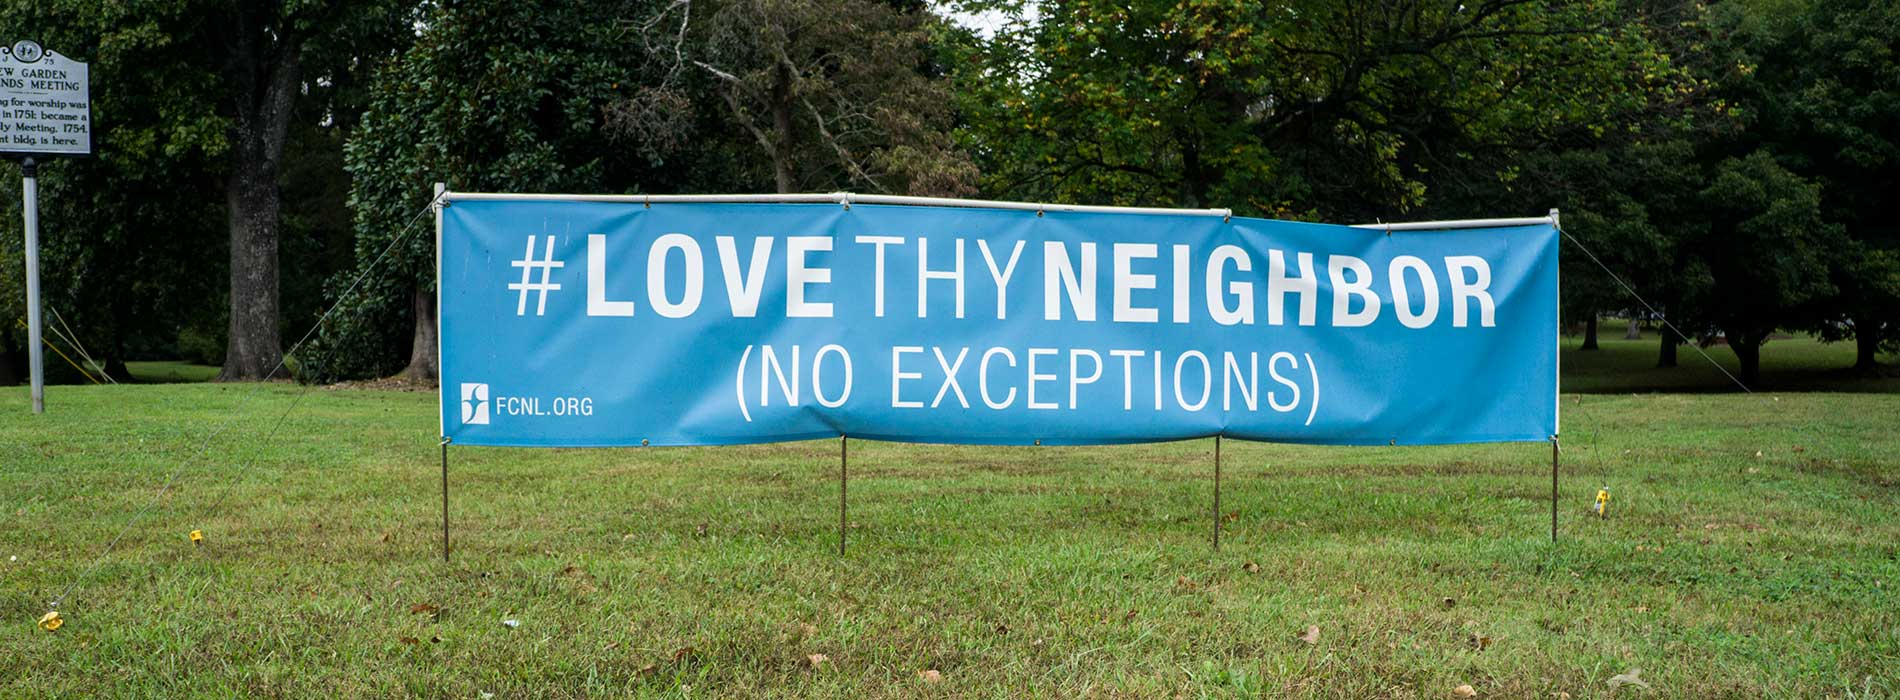 New Garden Friends Meeting - Love Thy Neighbor